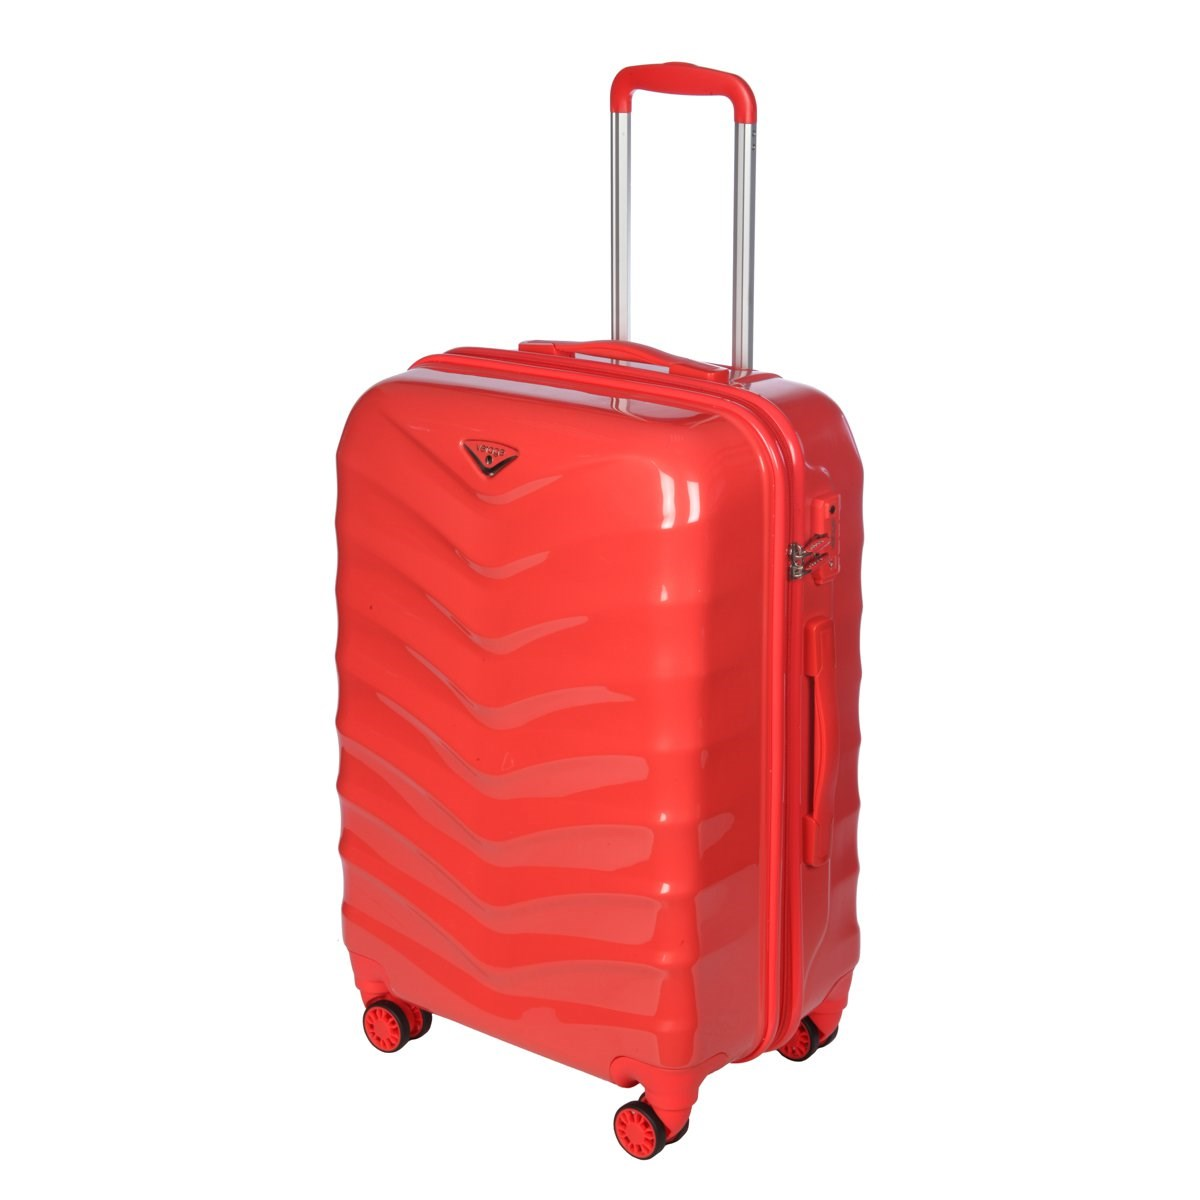 Suitcase-trolley Verage GM15059W24 hot coral